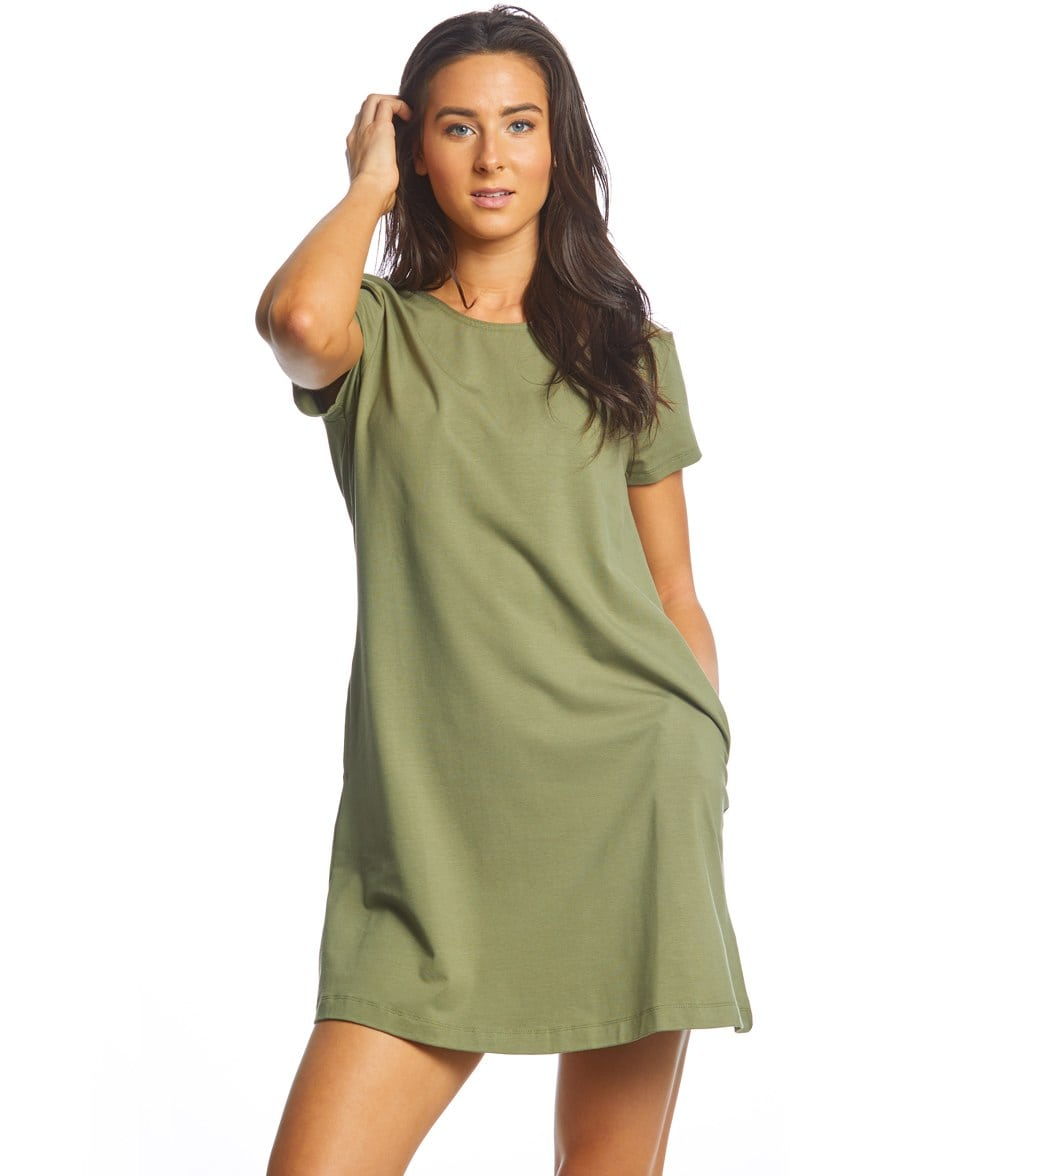 United By Blue Women's Ridley Swing Dress - Olive Xl Cotton - Swimoutlet.com